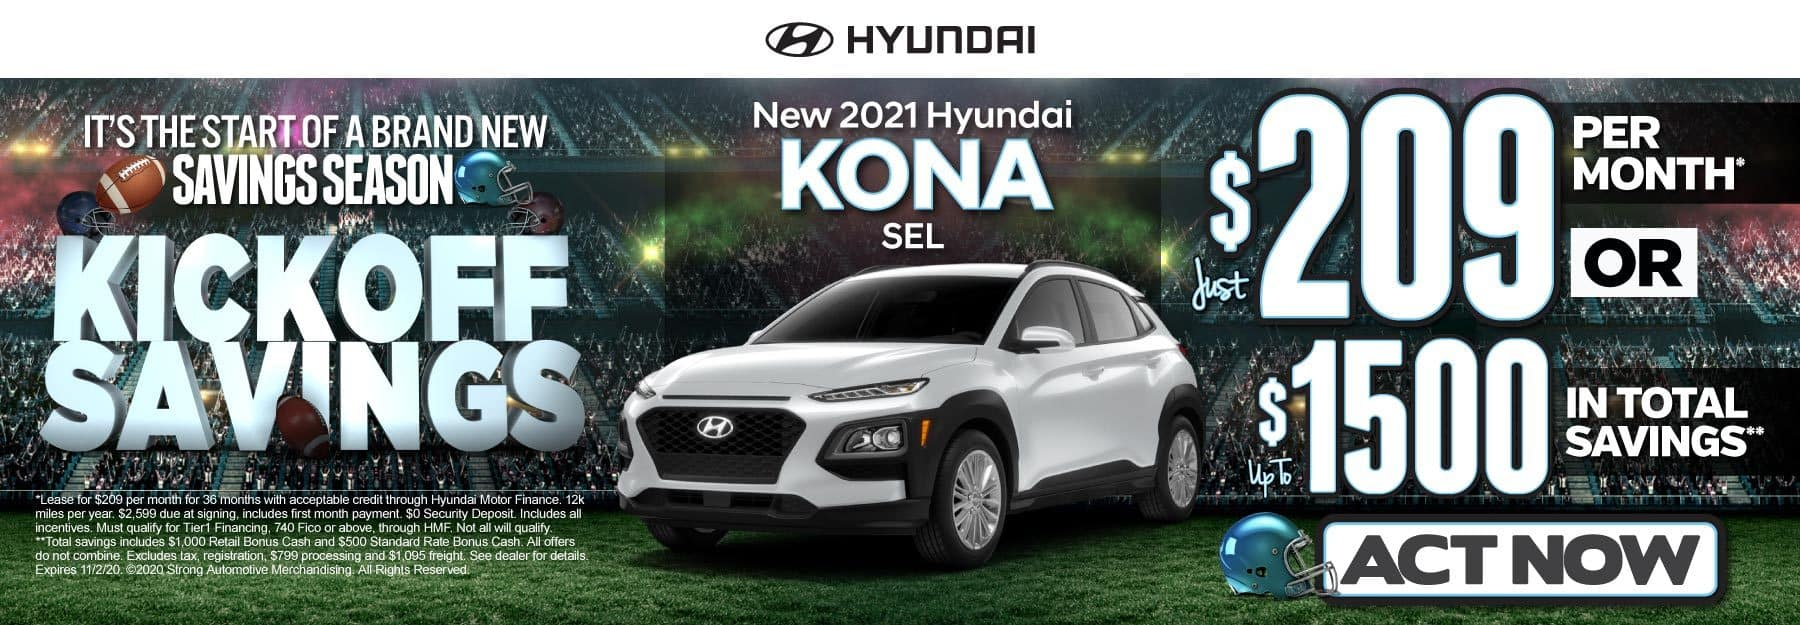 New 2021 Hyundai Kona | Just $209 per month | Click to View Inventory